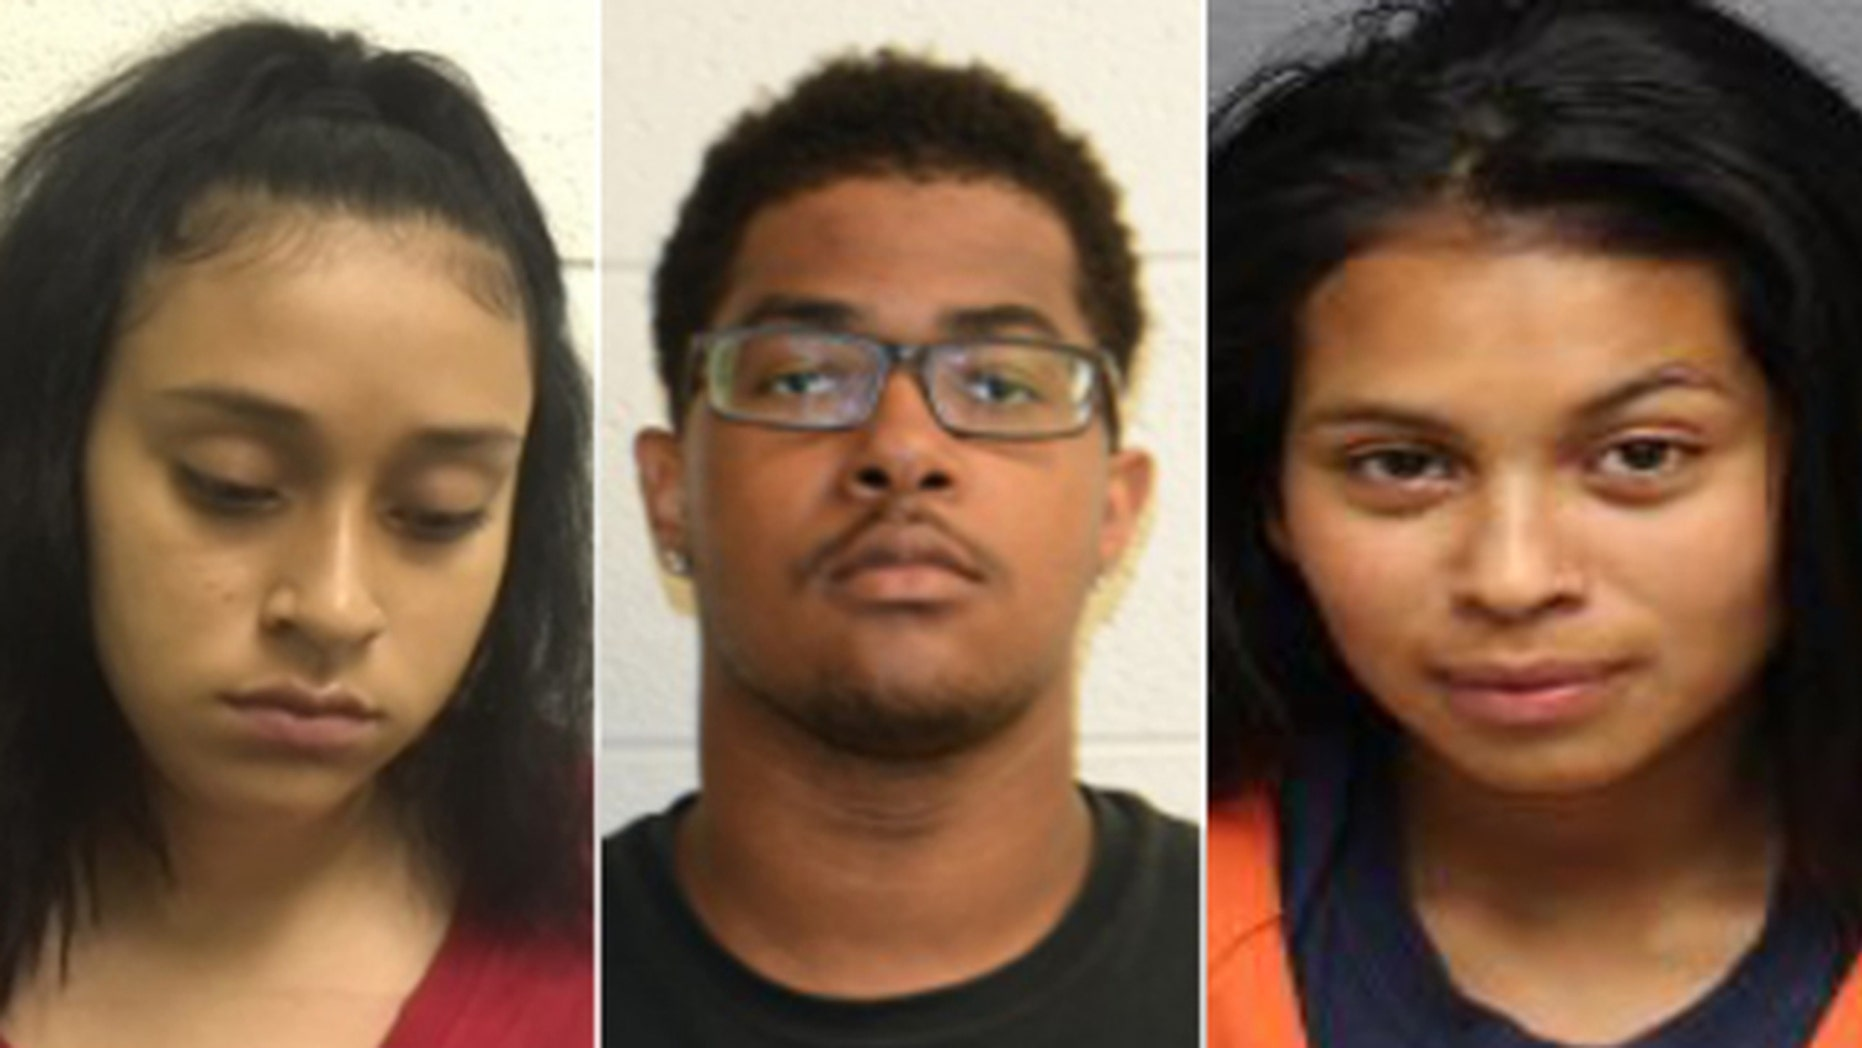 Left to right: Ebelin Jojana Lopez, 19; Terrance Tyrese Martin, 19; Seni Jimenez Blanco, 19; and two 17-year-old minors, were indicted on a lynching charge for the killing of a 24-year-old Virginia man.